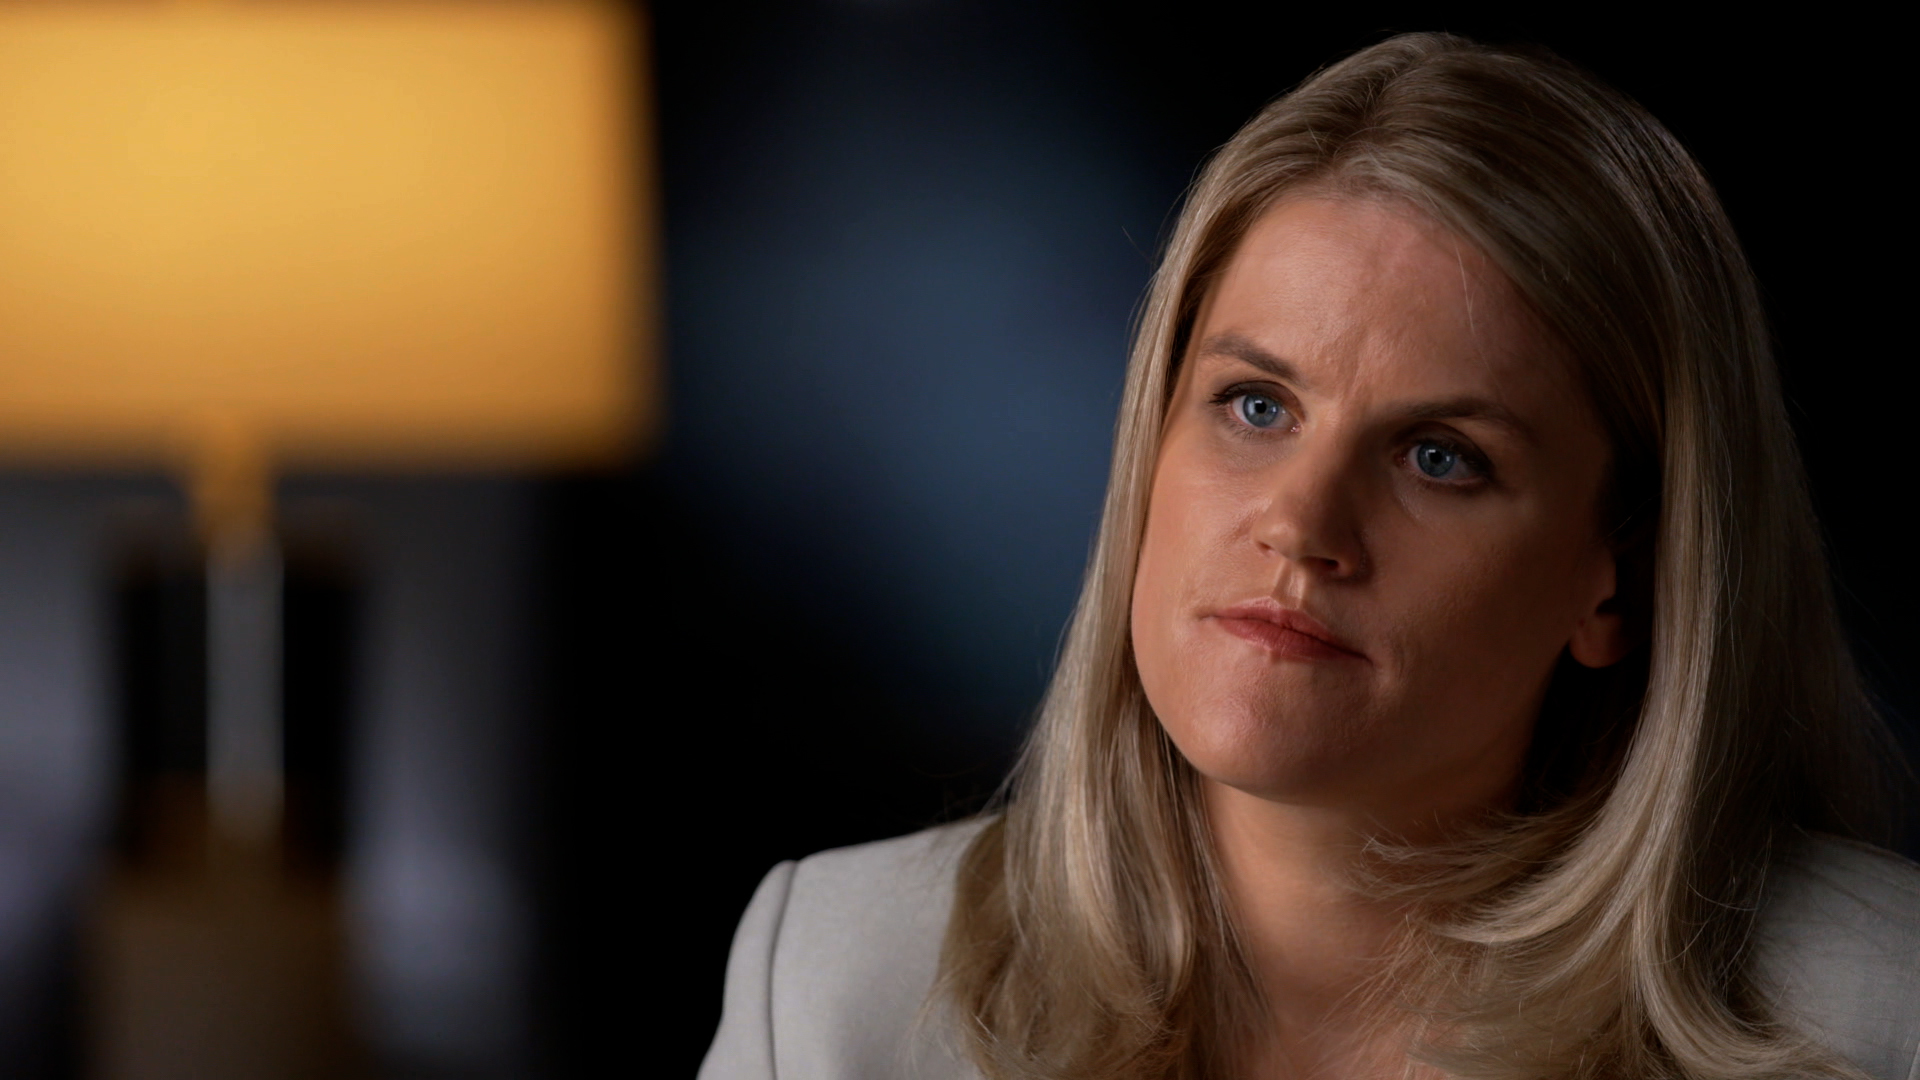 Frances Haugen outed herself at the Facebook whistleblower in an interview with CBS' 60 Minutes on Oct 3. — Photo courtesy CBS 60 Minutes